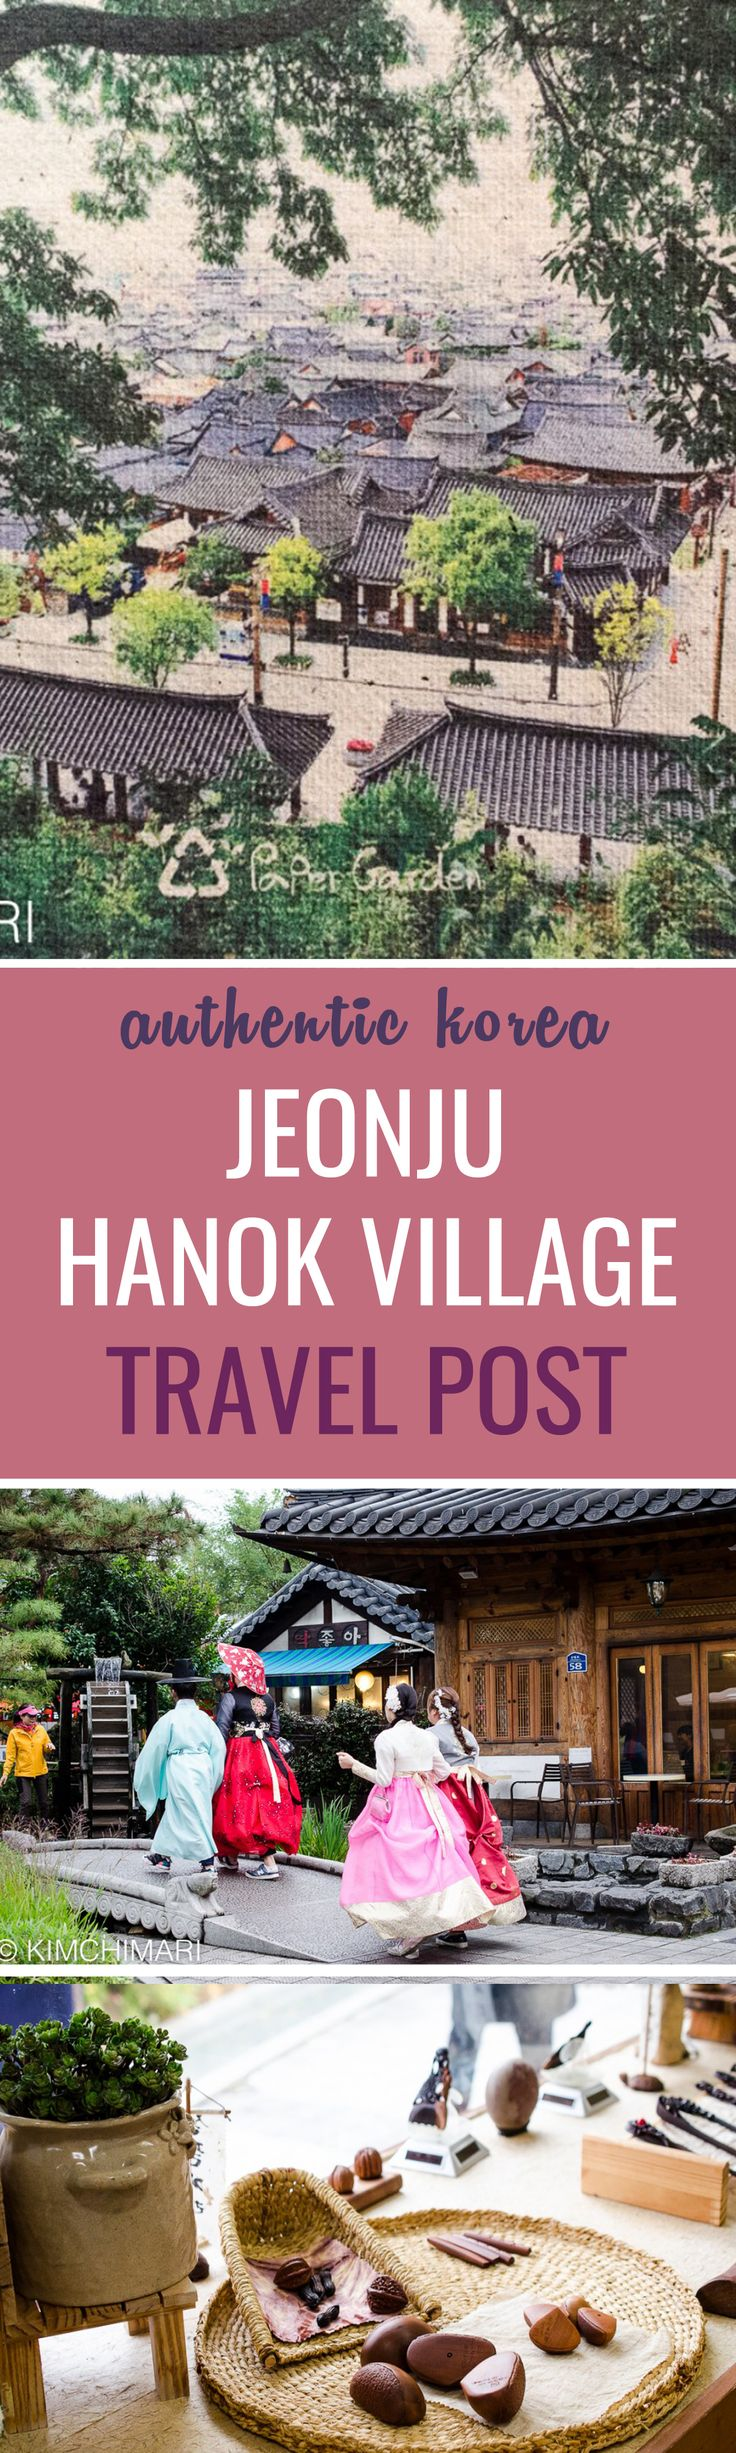 Jeonju, Korea is the capital city of North Jeolla Province. Jeolla province has history dating back to pre-historic times but Jeonju came to existence as a city in 900 AD as part of Later Baekjae era.